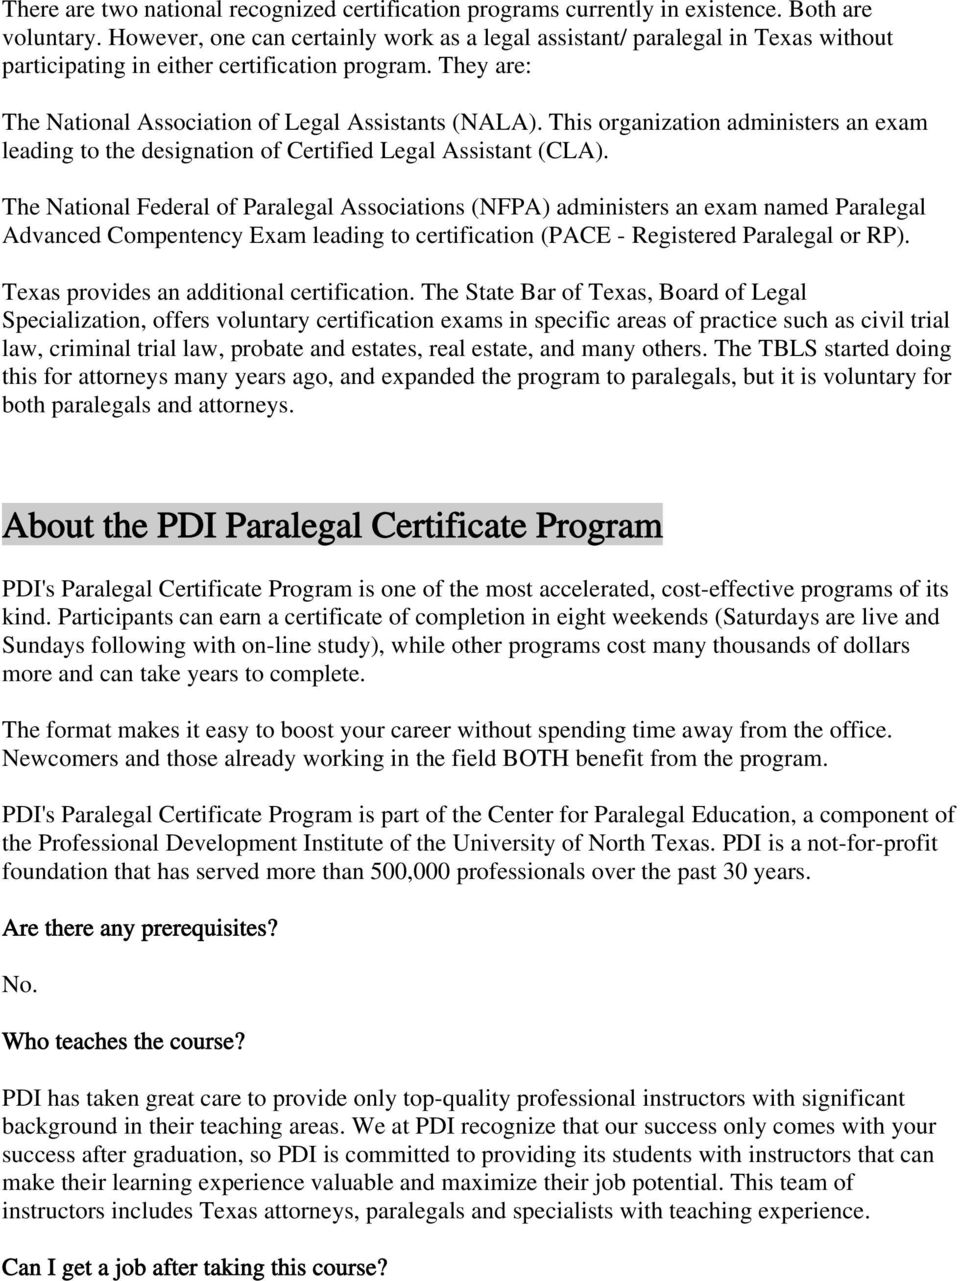 Commonly Asked Questions About The Paralegal Certificate Program Pdf